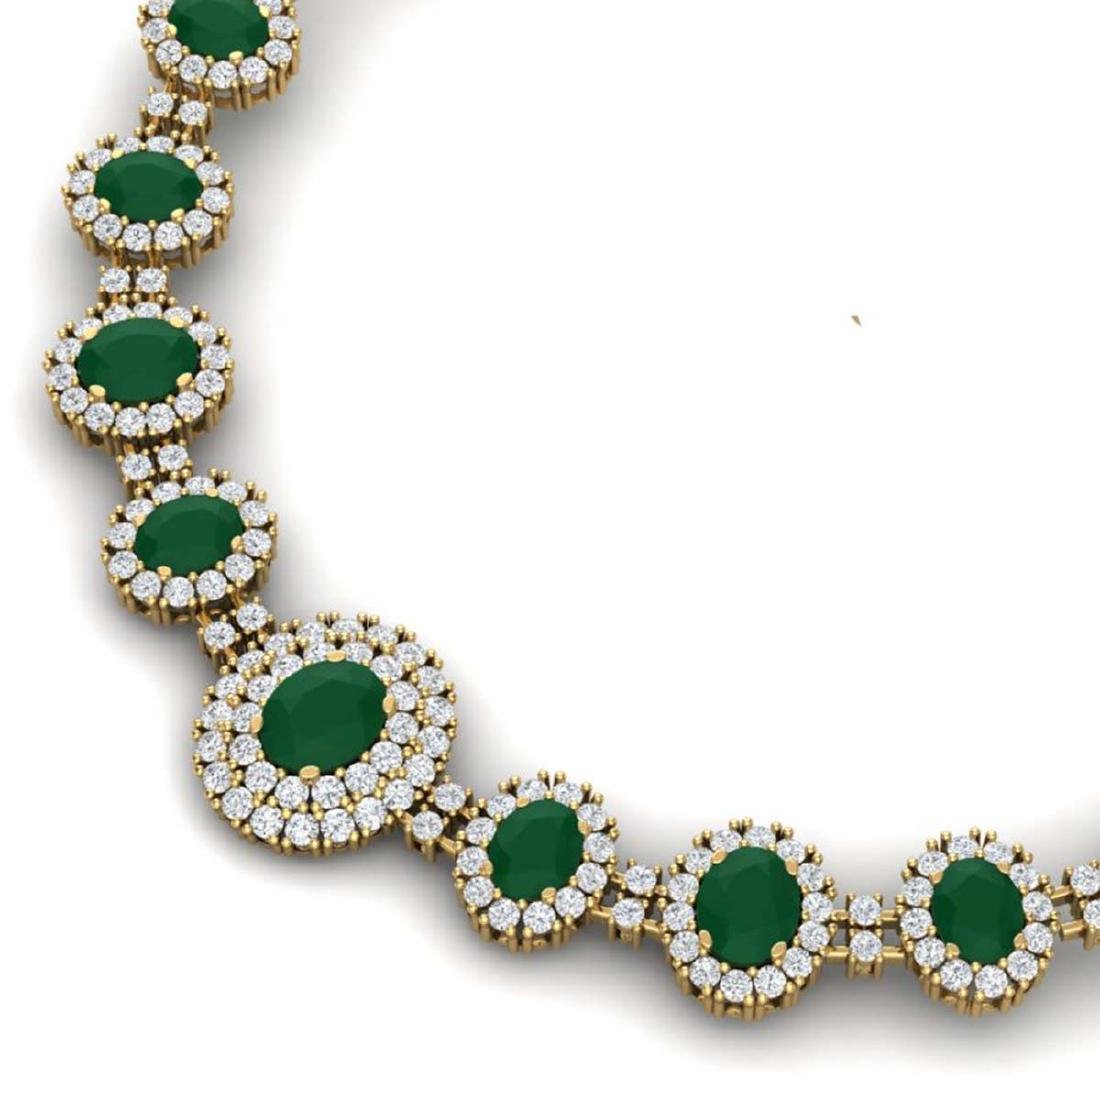 45.69 ctw Emerald & VS Diamond Necklace 18K Yellow Gold - 2